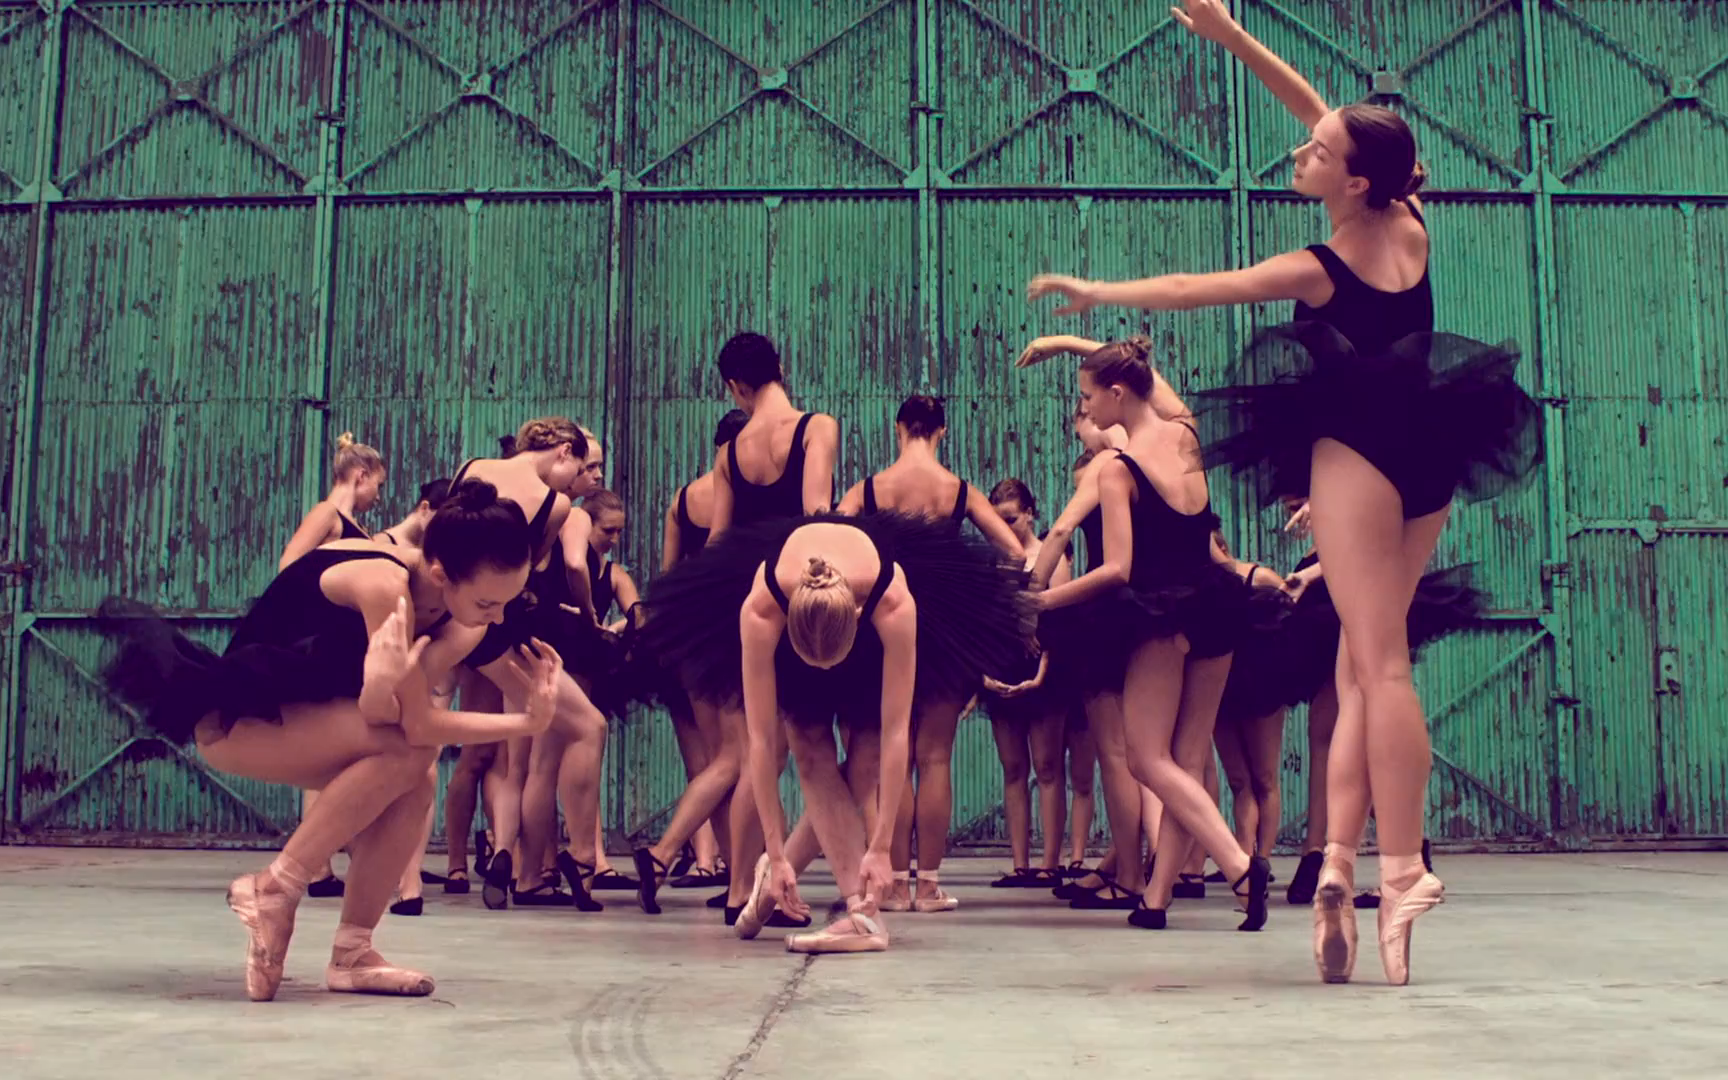 Kanye West Runaway Ballet Video Still Ballet Ballerinas Dance Stage Tutus Royal Legs Movement Photography Kanye West Short Film Just Dance